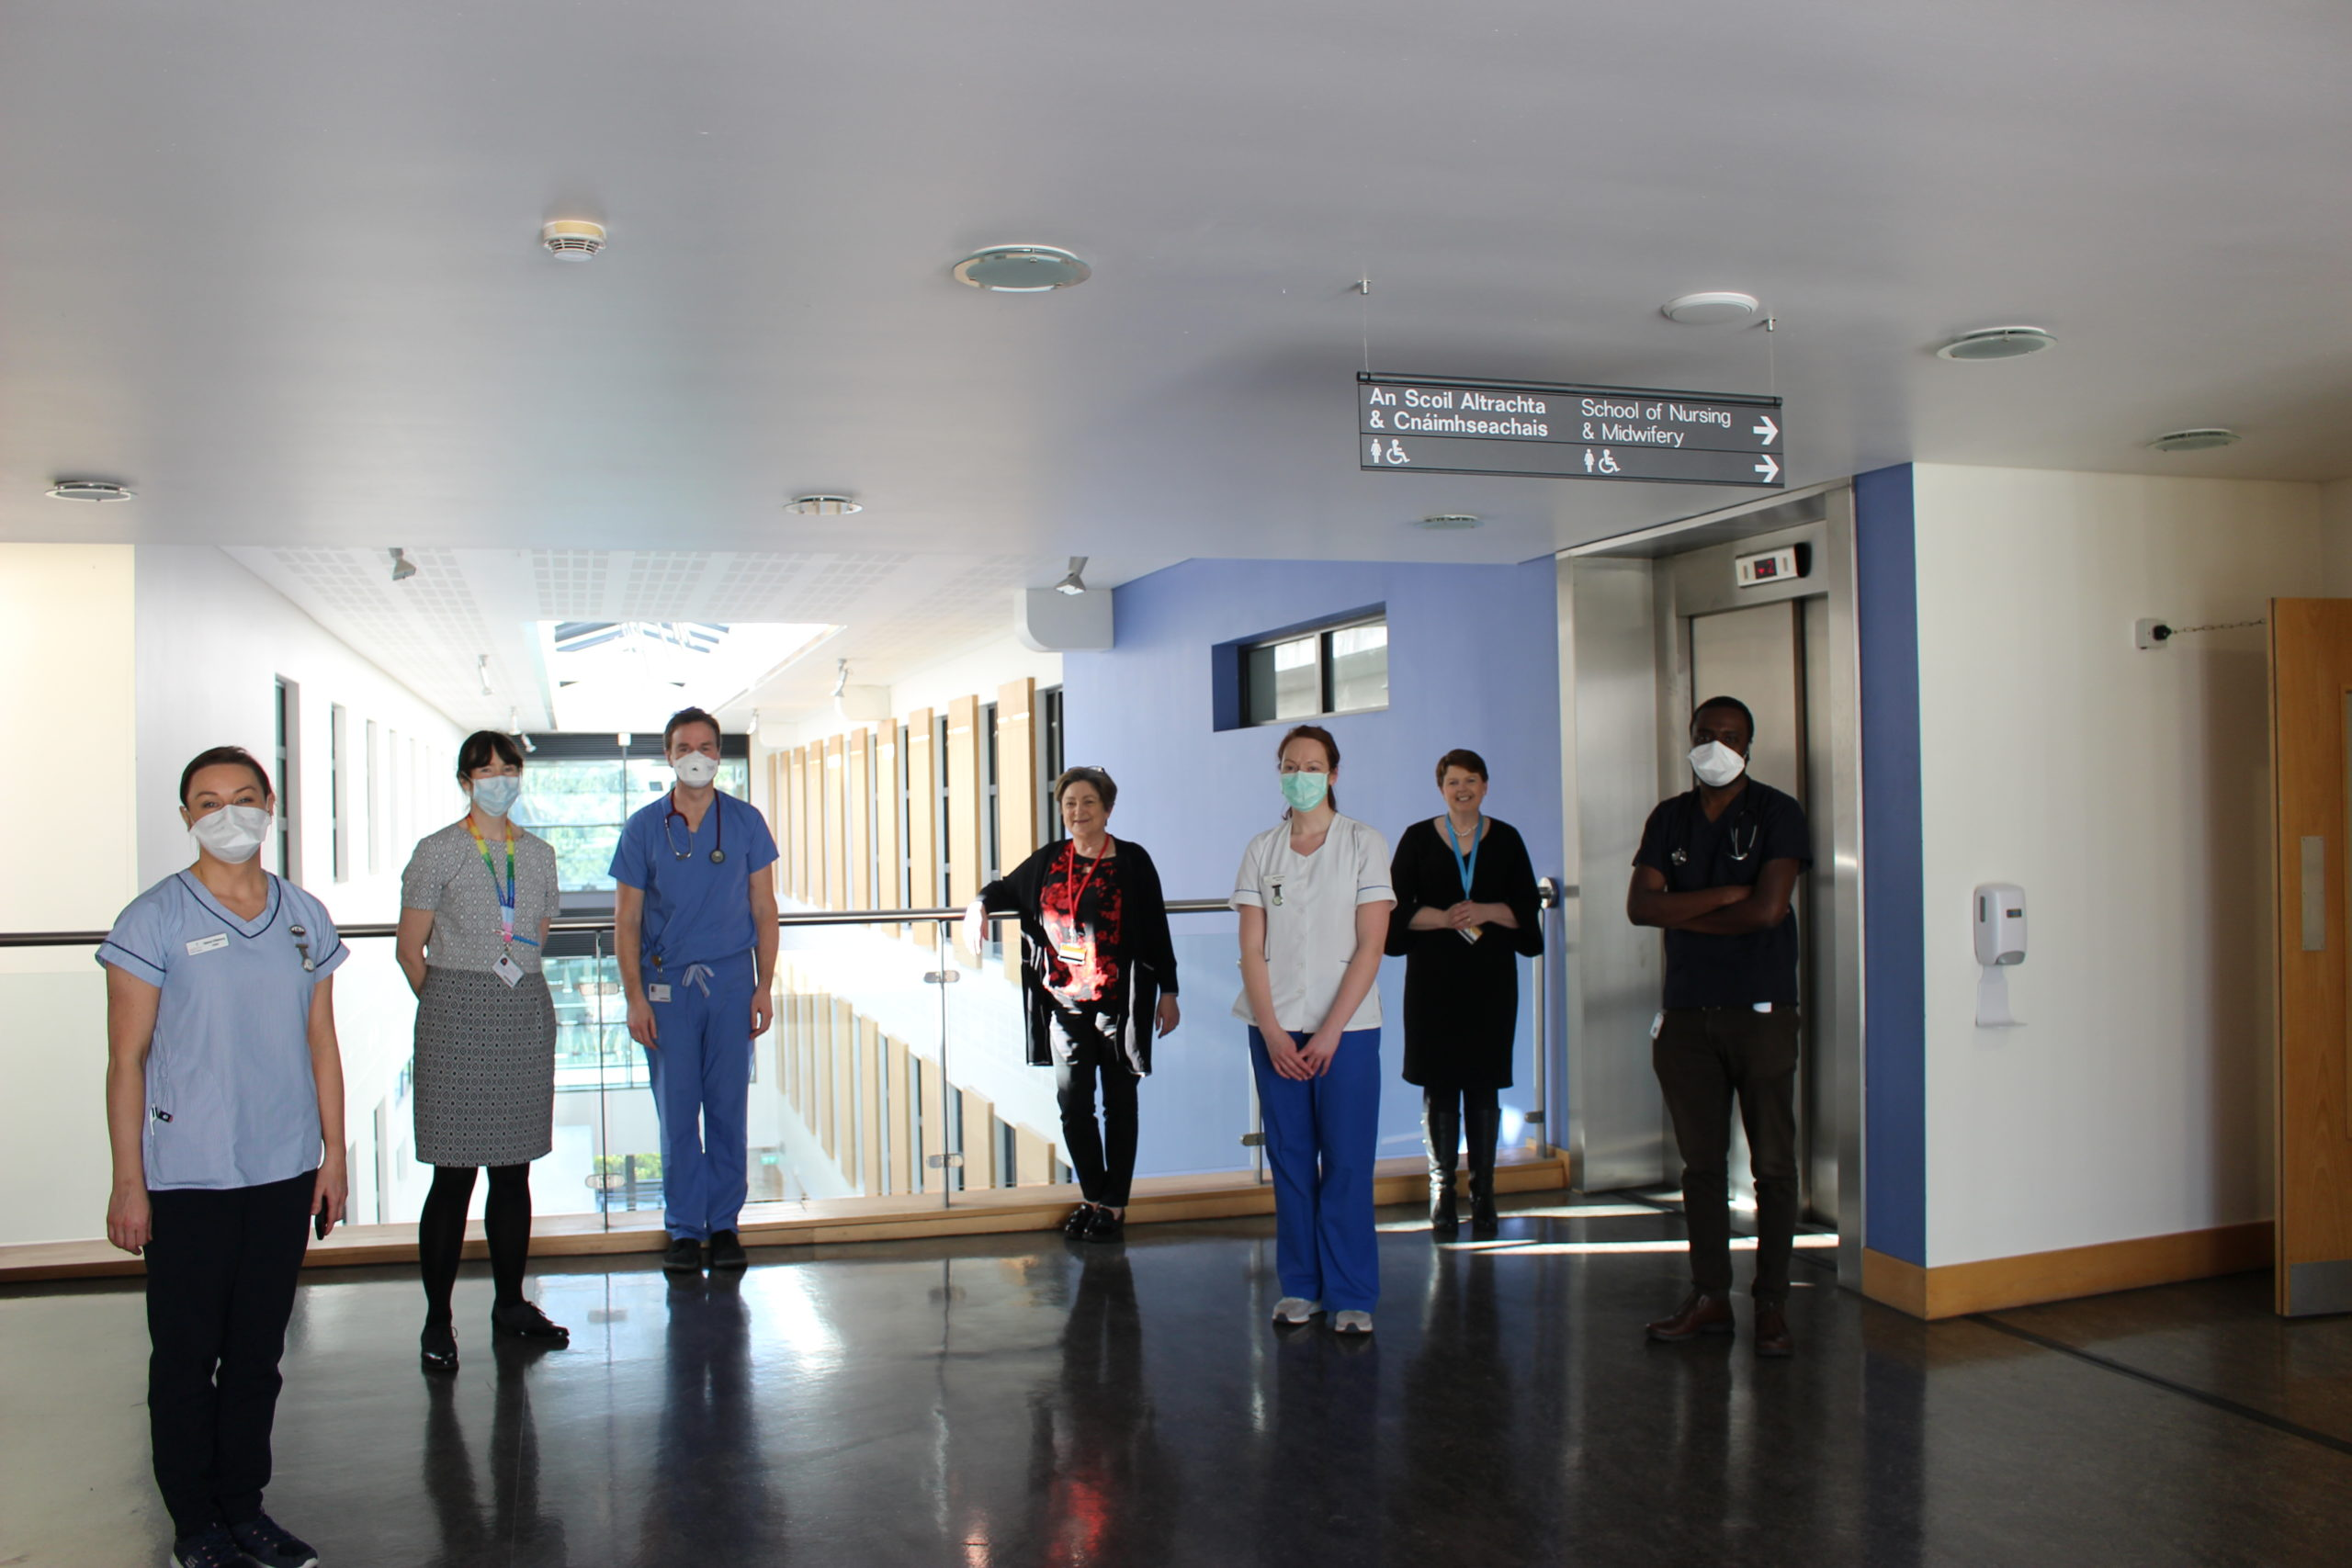 UCC's School of Nursing transformed into HSE Oncology Day Service during COVID-19 crisis